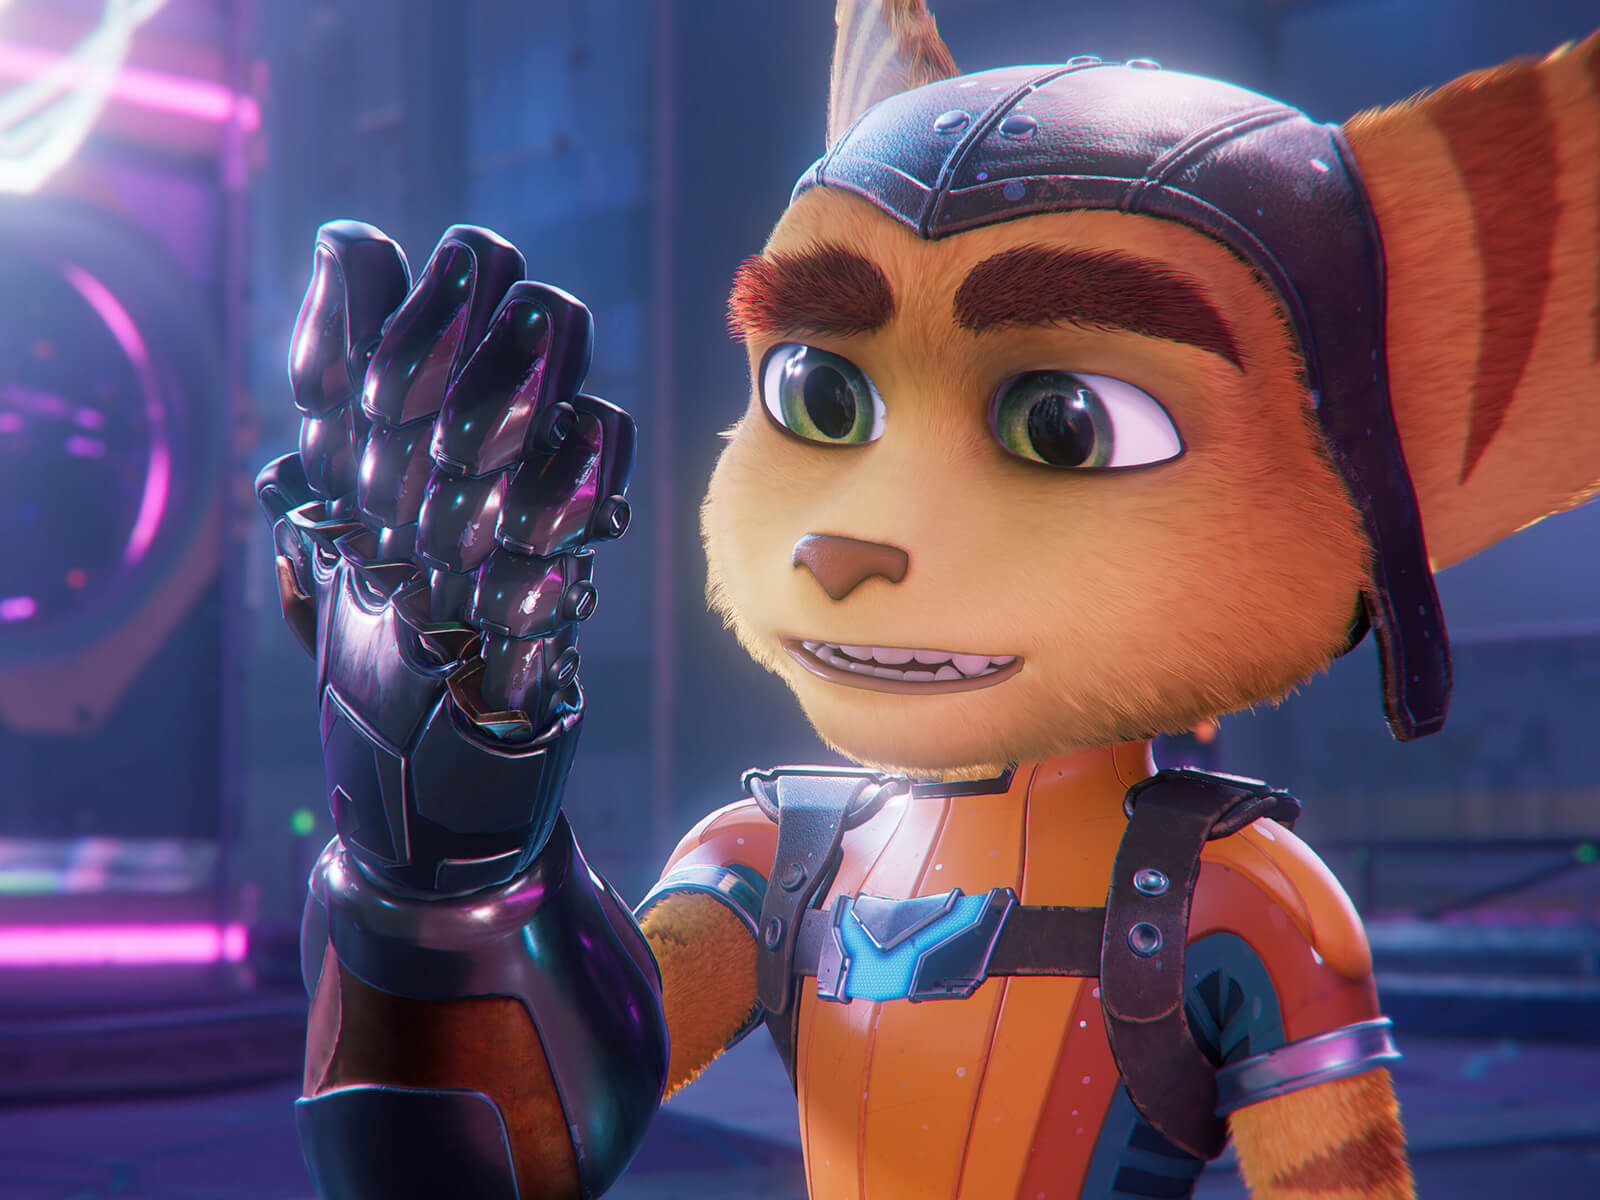 Ratchet admires his mechanical glove in a screenshot from Ratcher & Clank: Rift Apart.